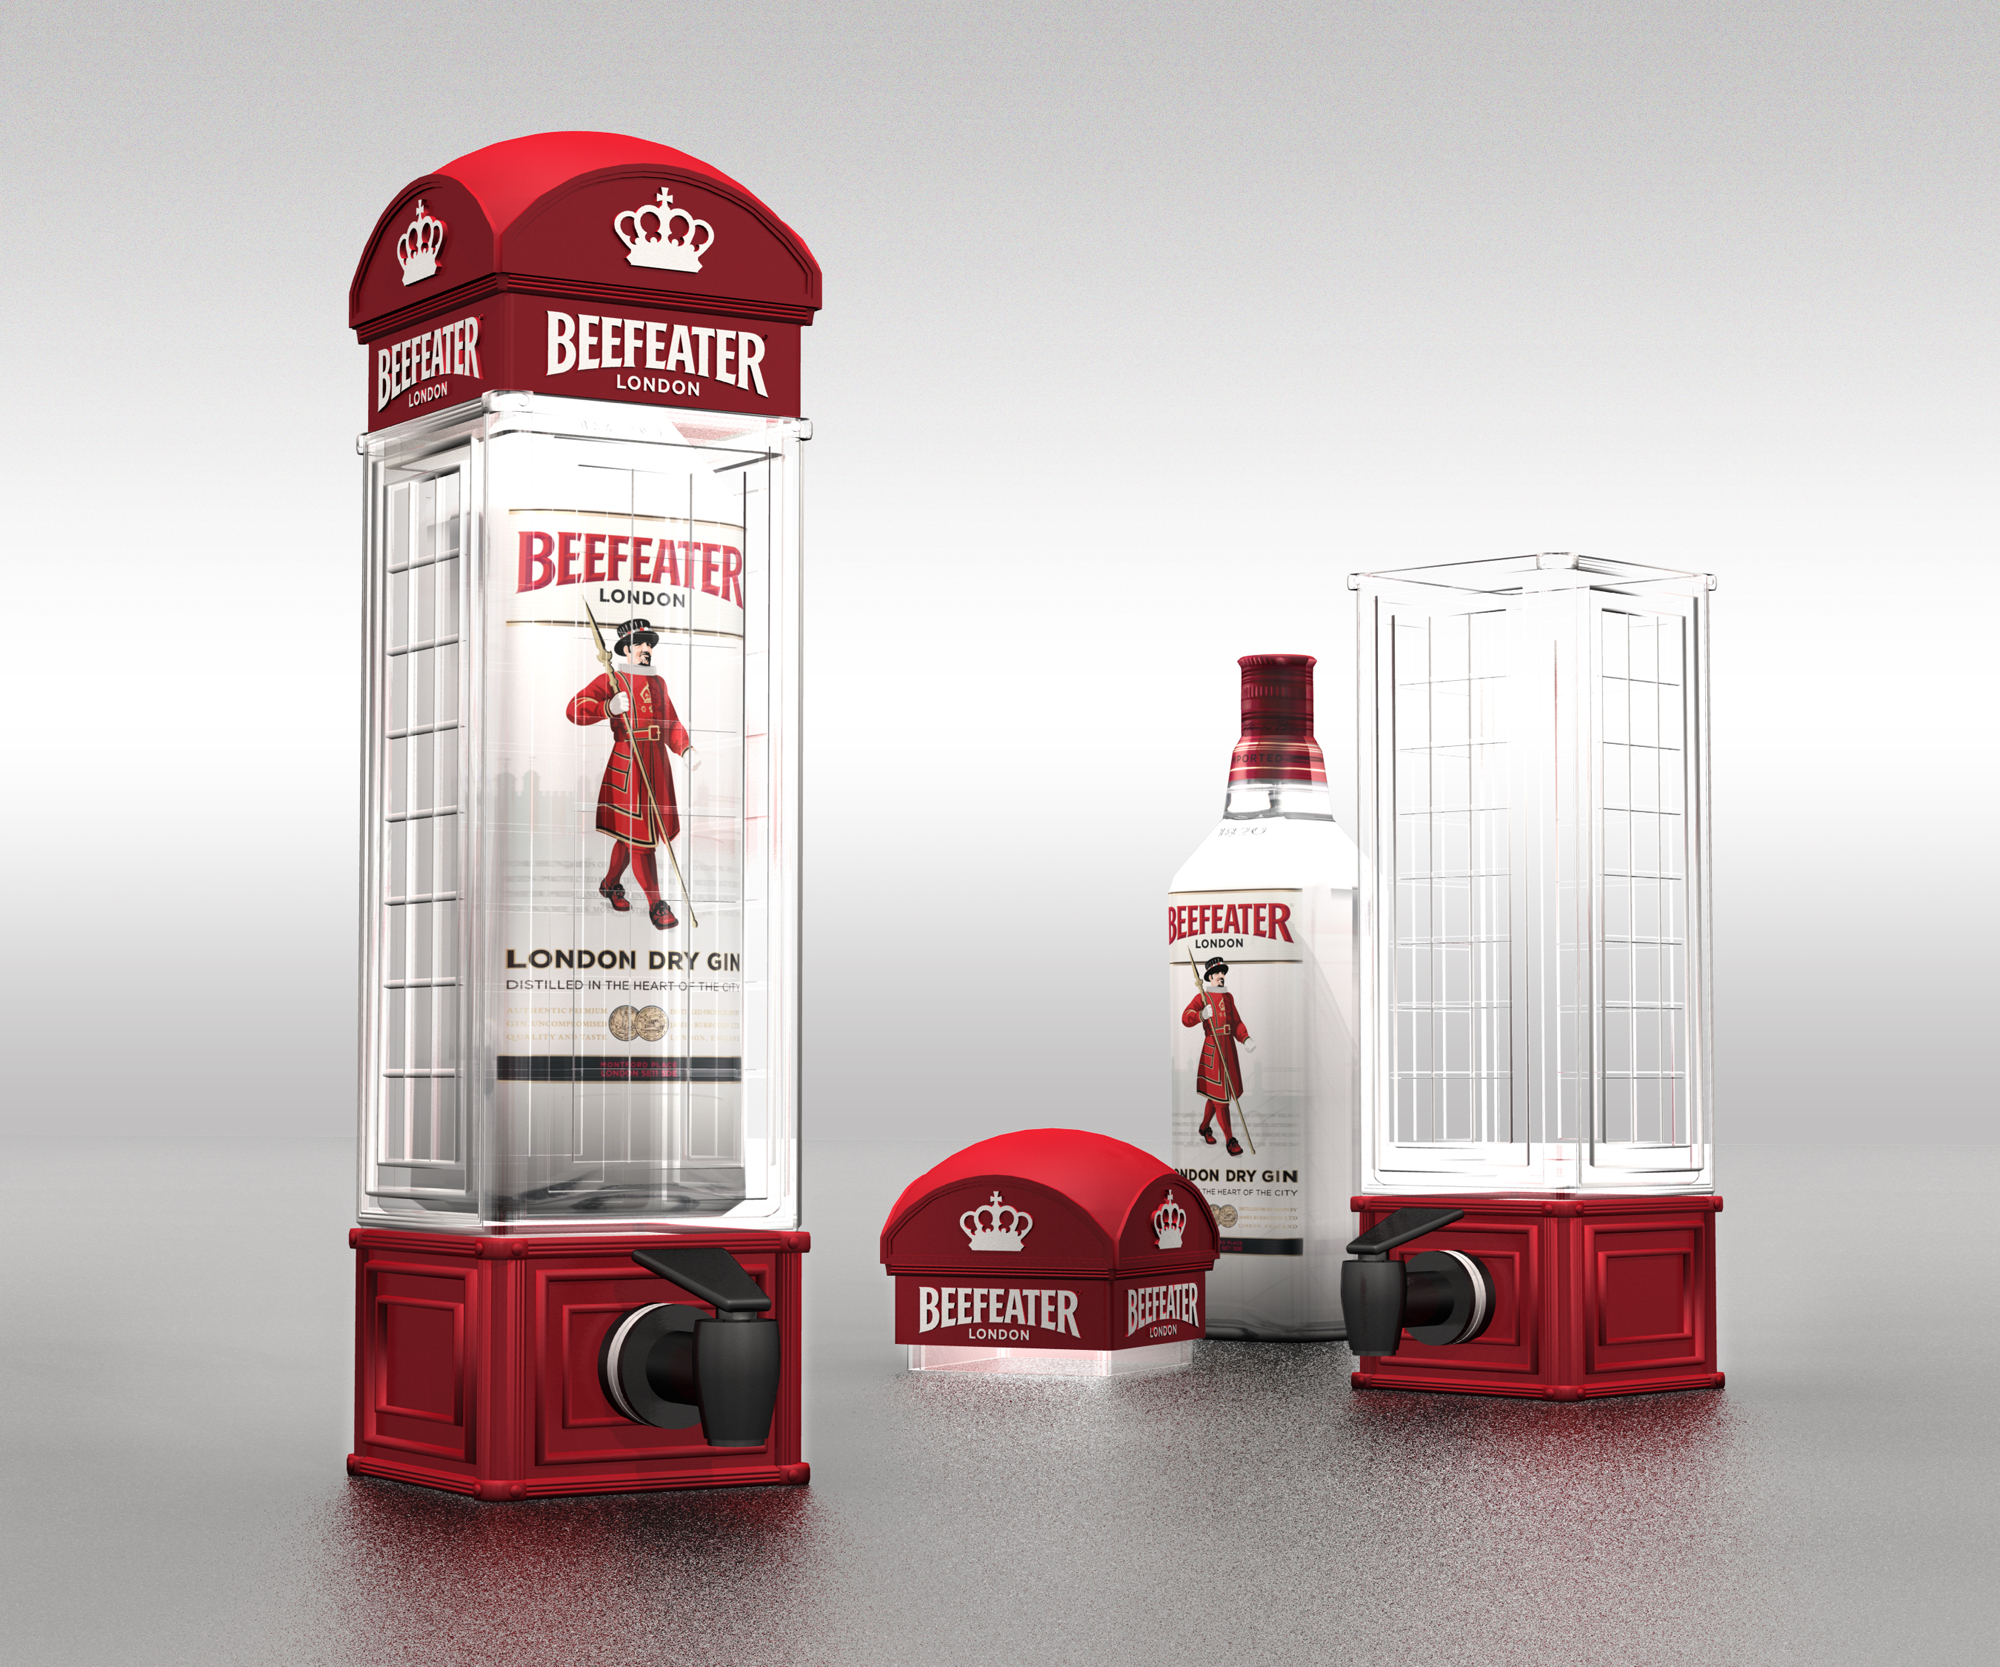 BeefeaterBoothJug3d